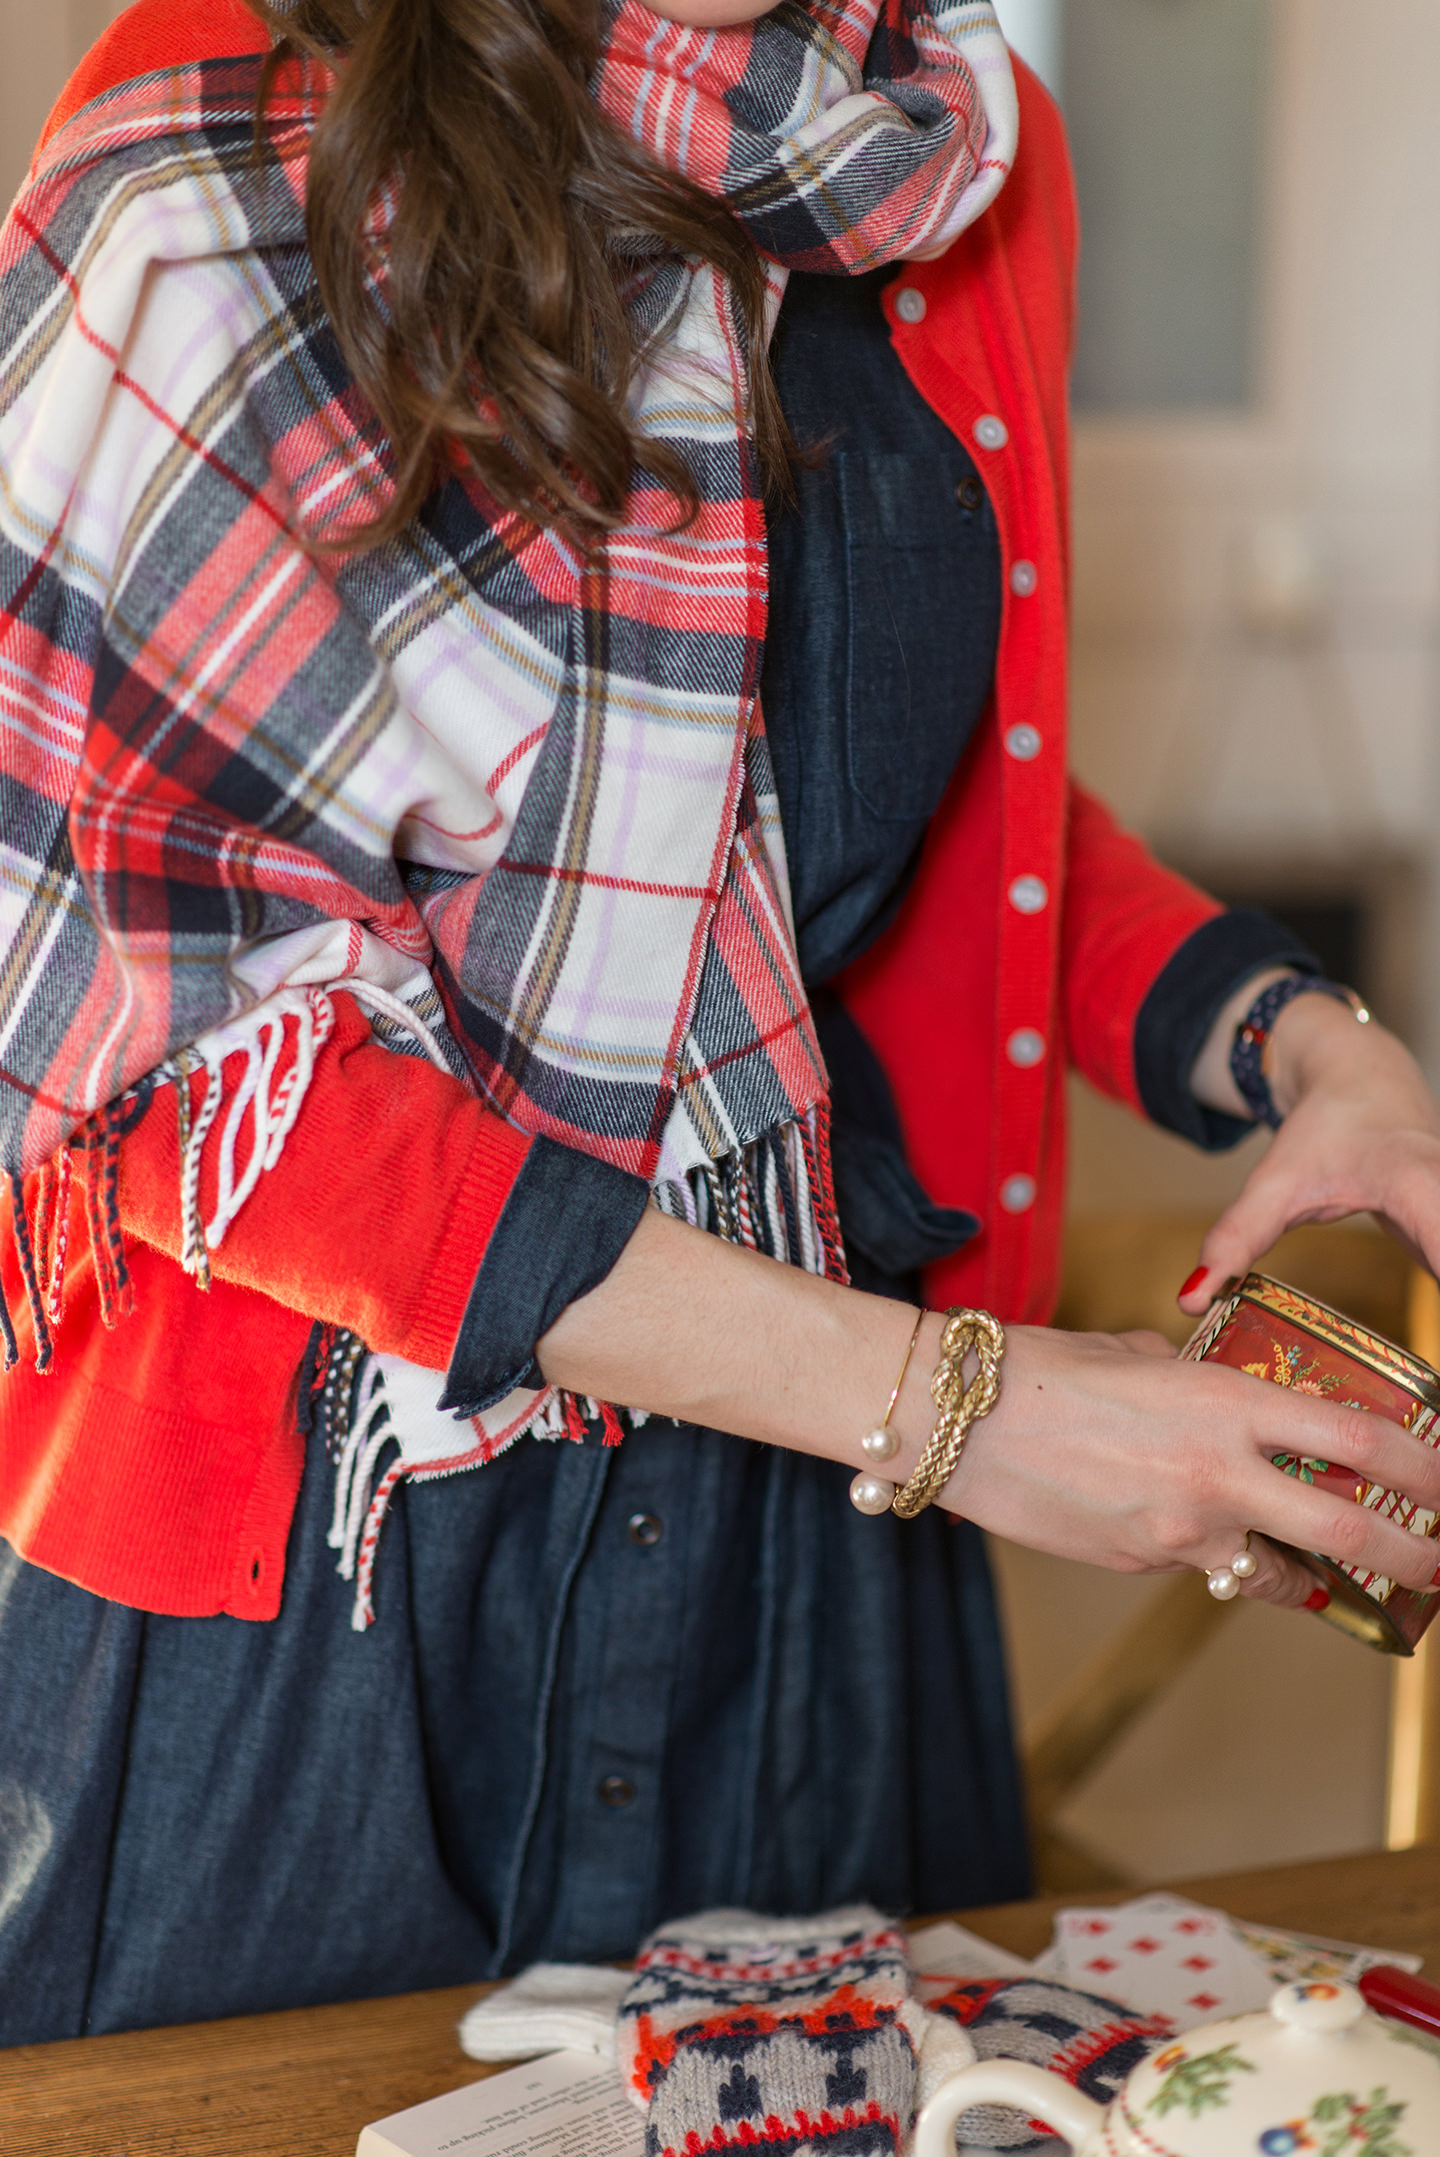 Blog-Mode-And-The-City-Looks-Gap-Teatime-NoelBlog-Mode-And-The-City-Looks-Gap-Teatime-Noel